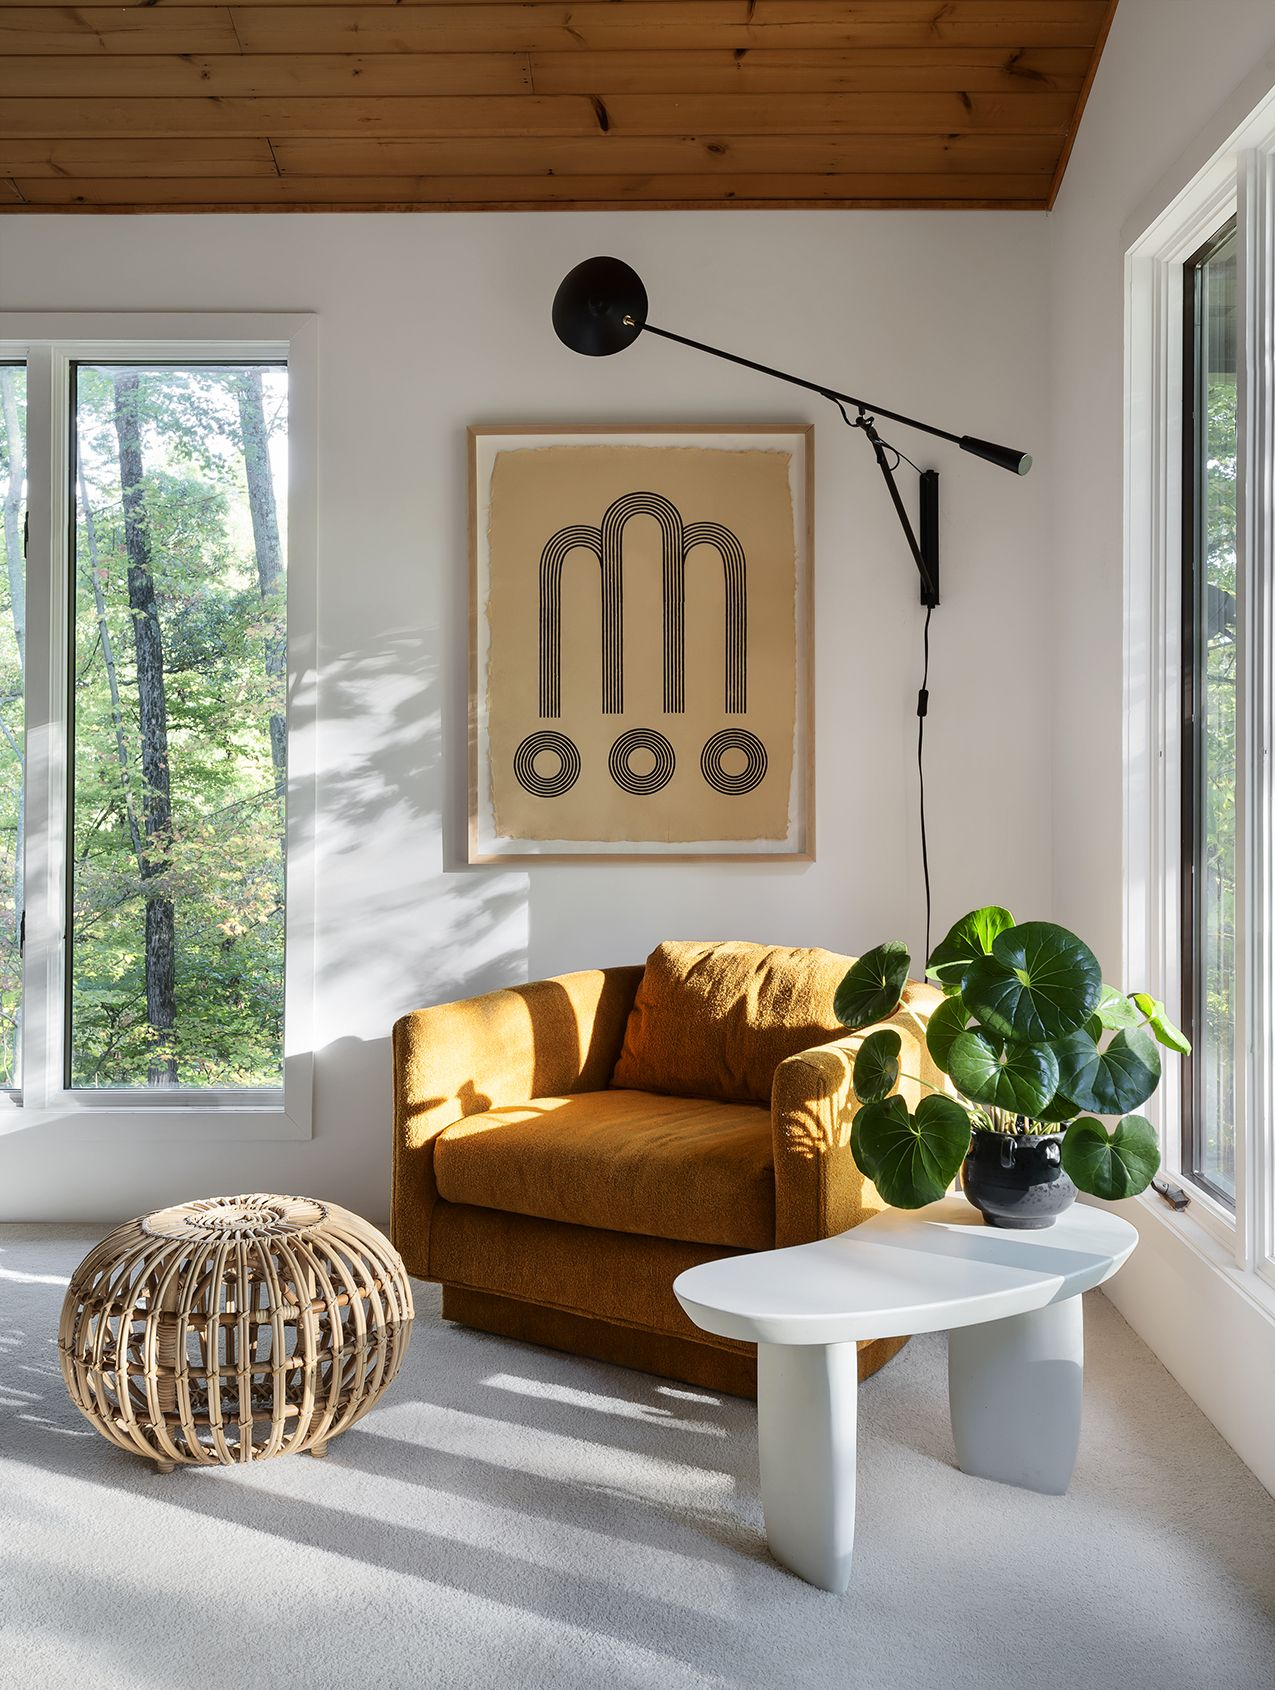 Find Out What a Picture Window is and How to Decorate It | DIY